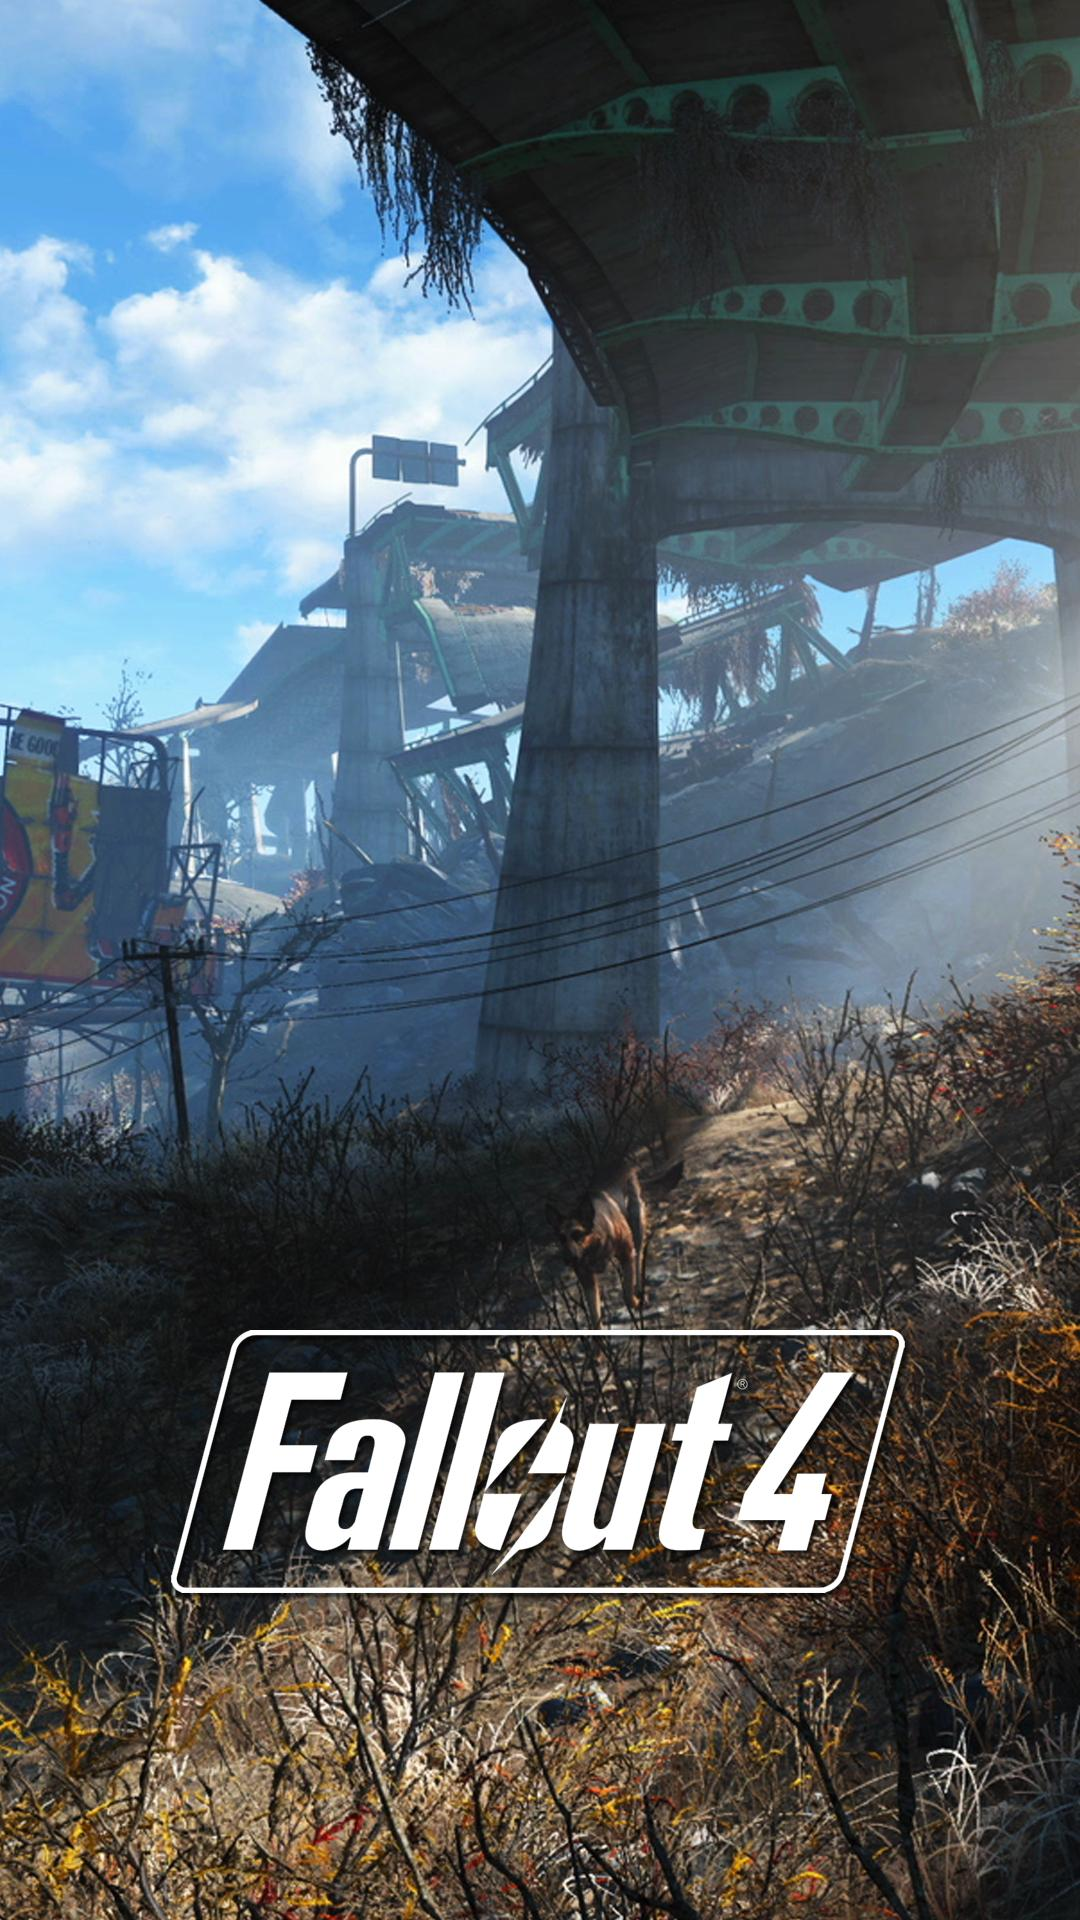 44 Fallout 4 Android Wallpaper On Wallpapersafari